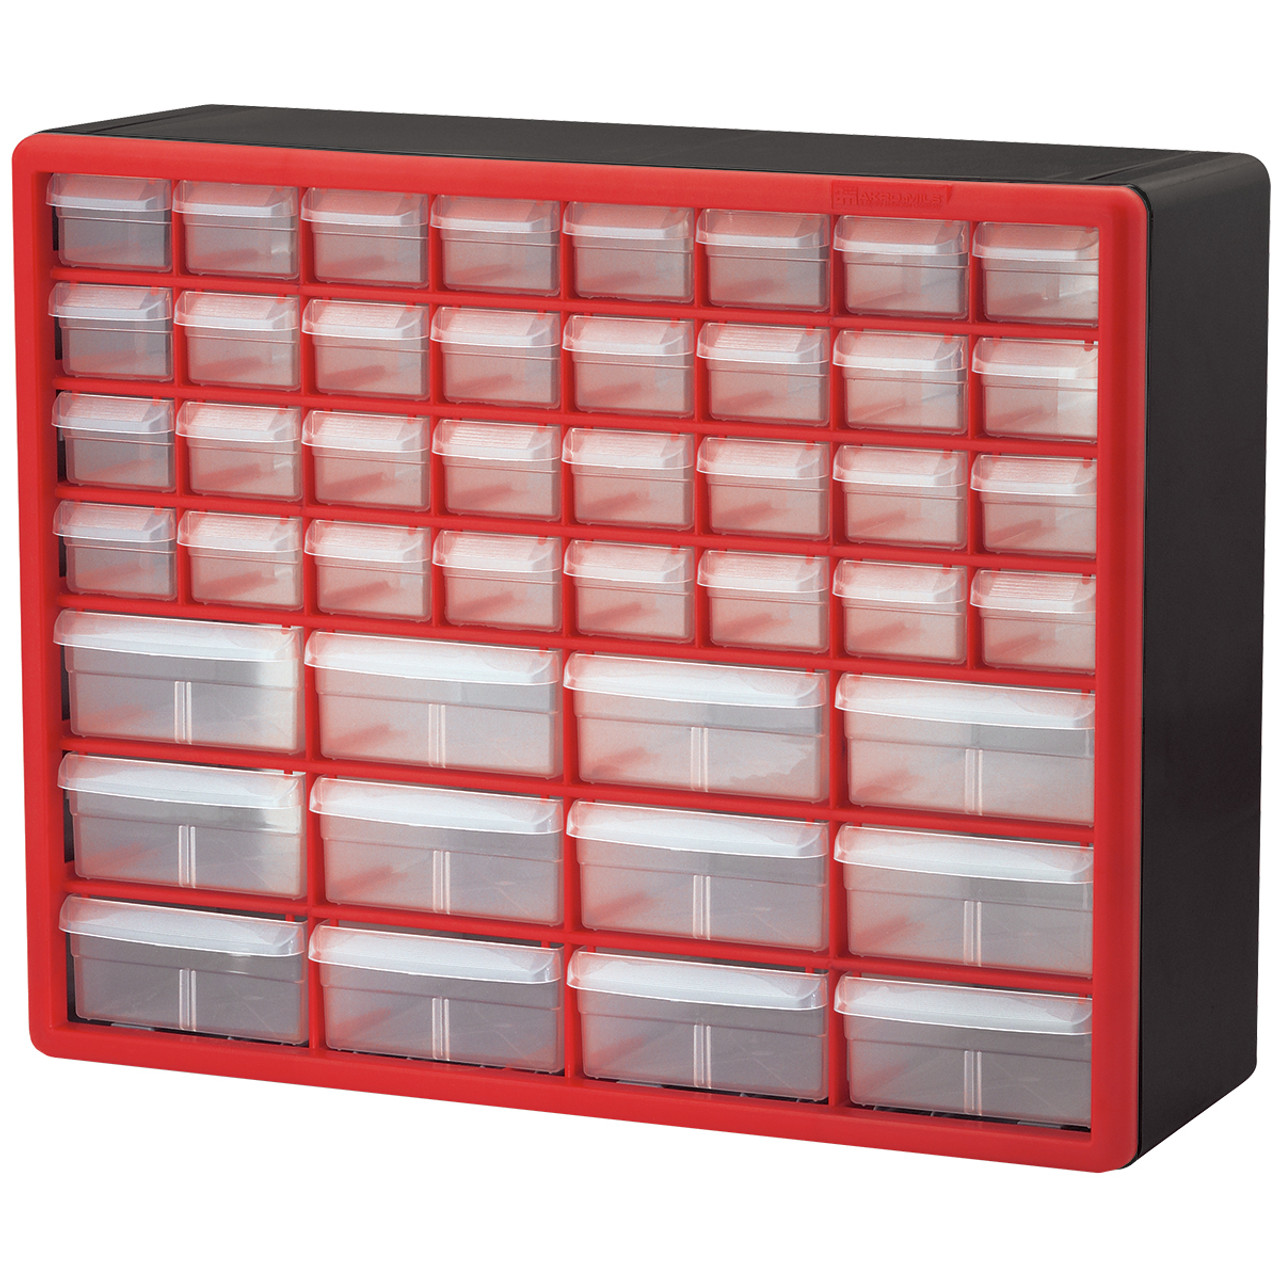 Case, Plastic Storage Cabinet 44 Drawer 10144REDBLK